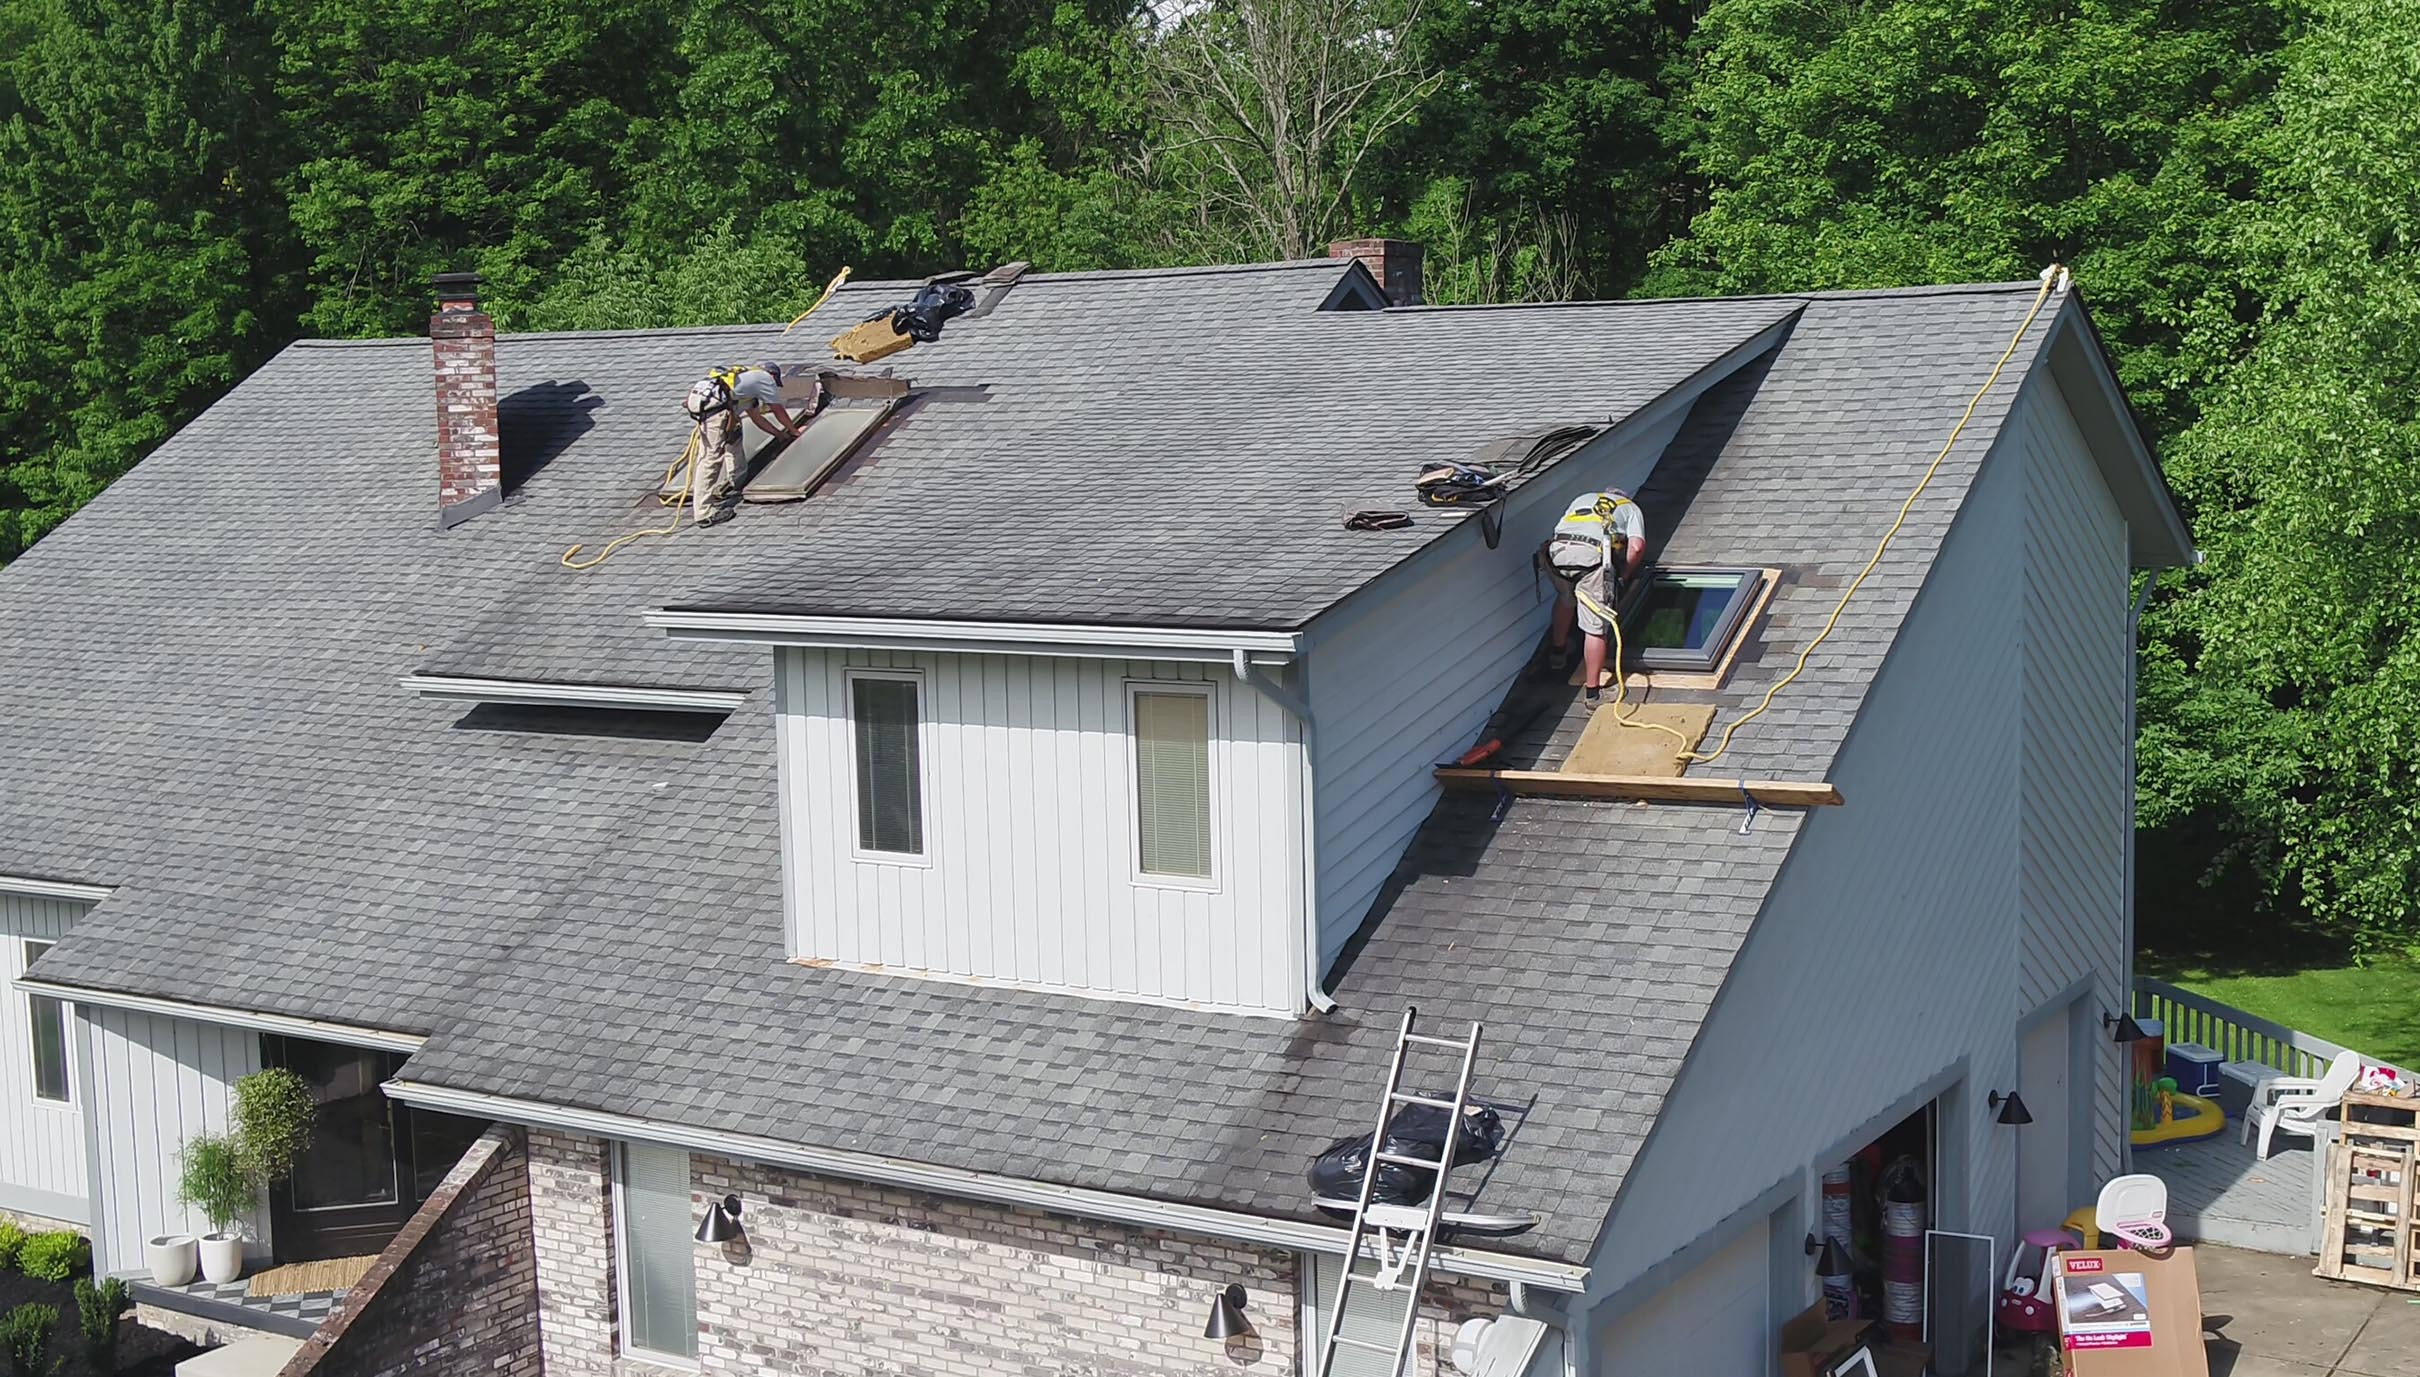 Two workers install skylights on a roof